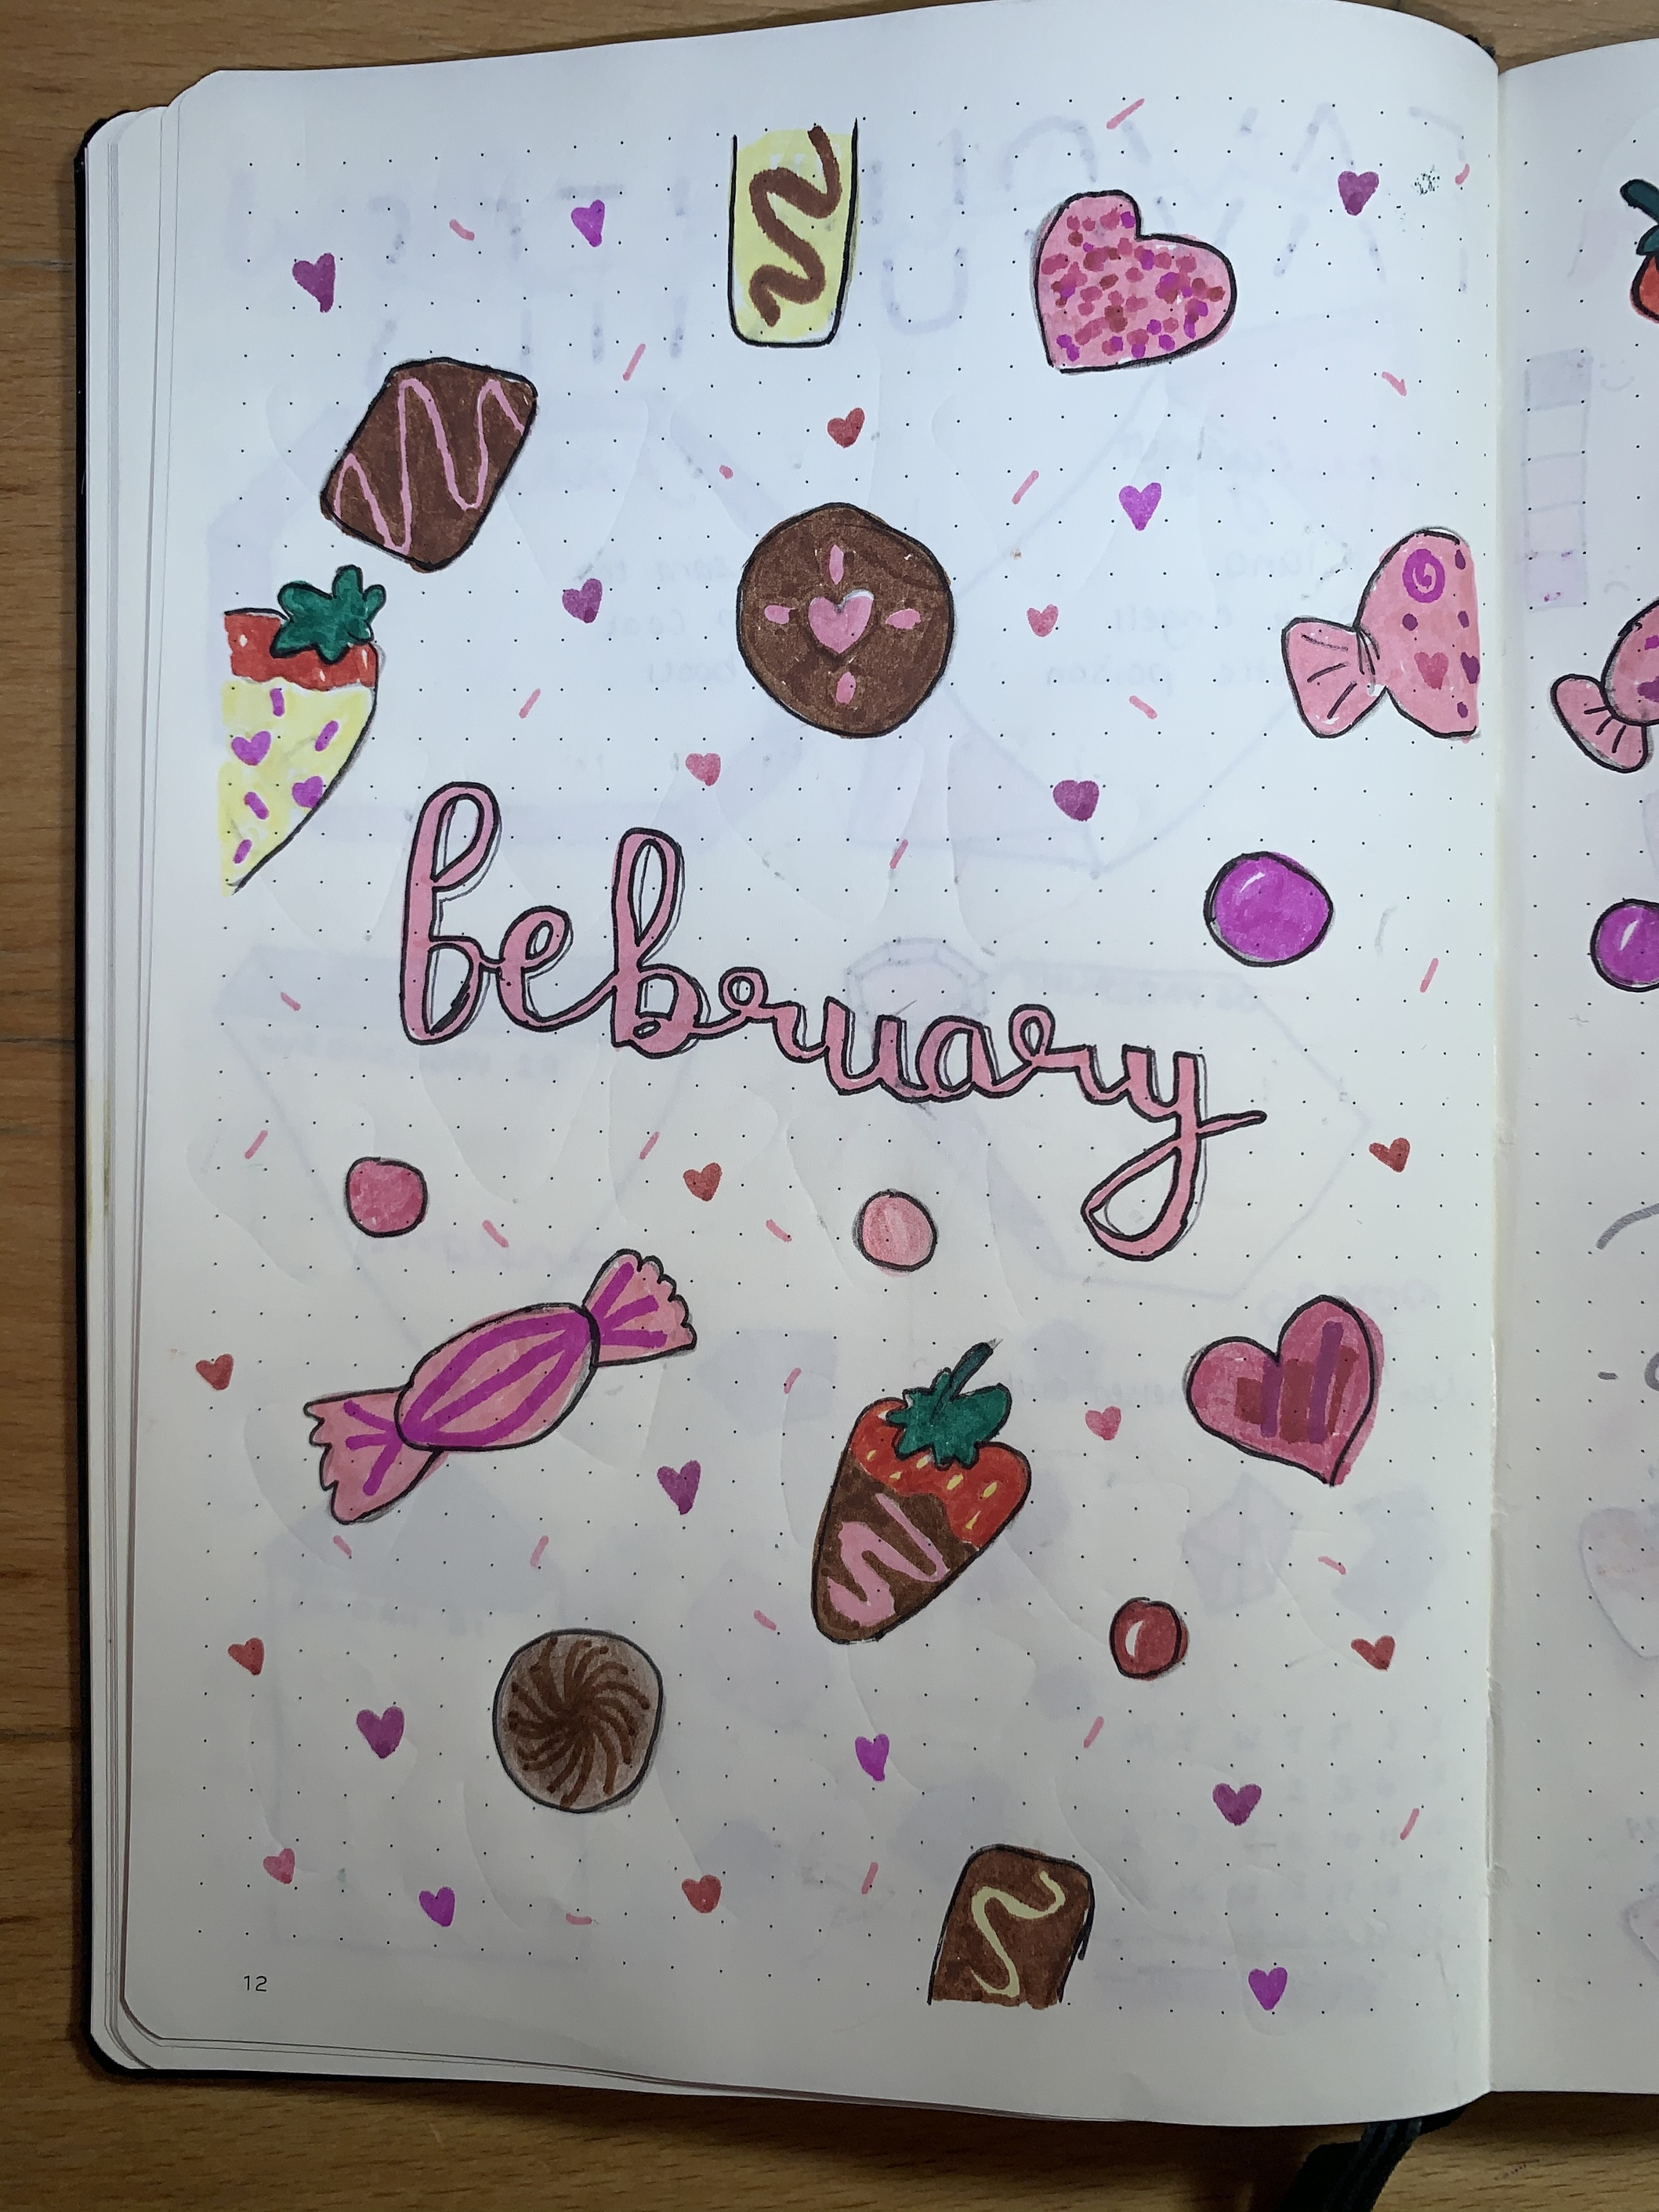 February bullet journal cover page decorated with chocolates and chocolate dipped strawberries